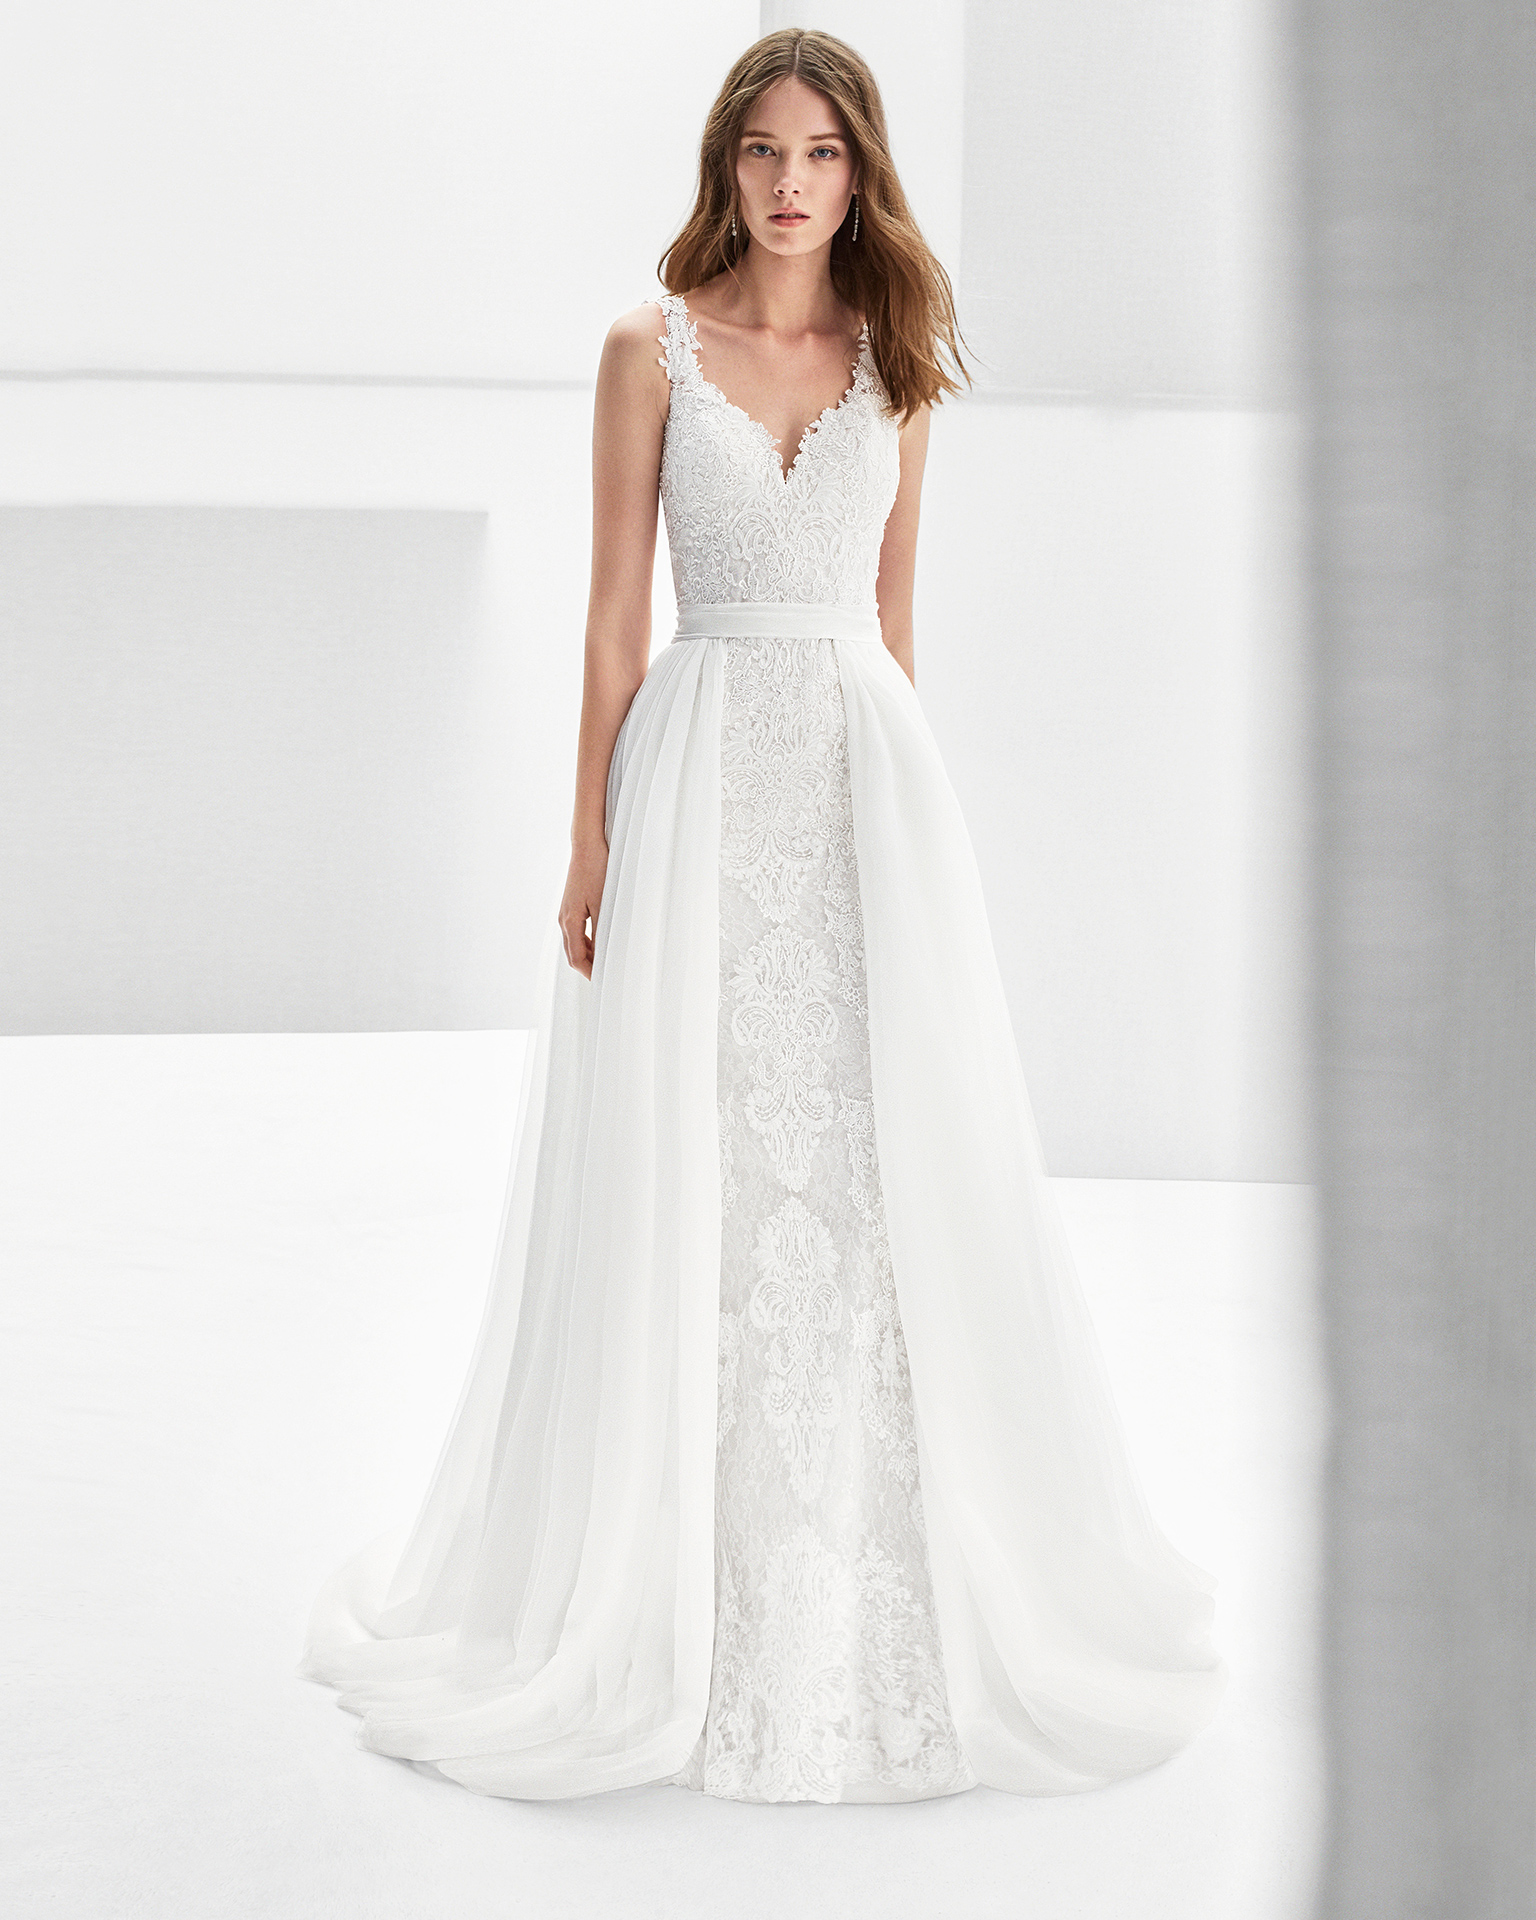 Mermaid-style guipure lace wedding dress with low back and overskirt.